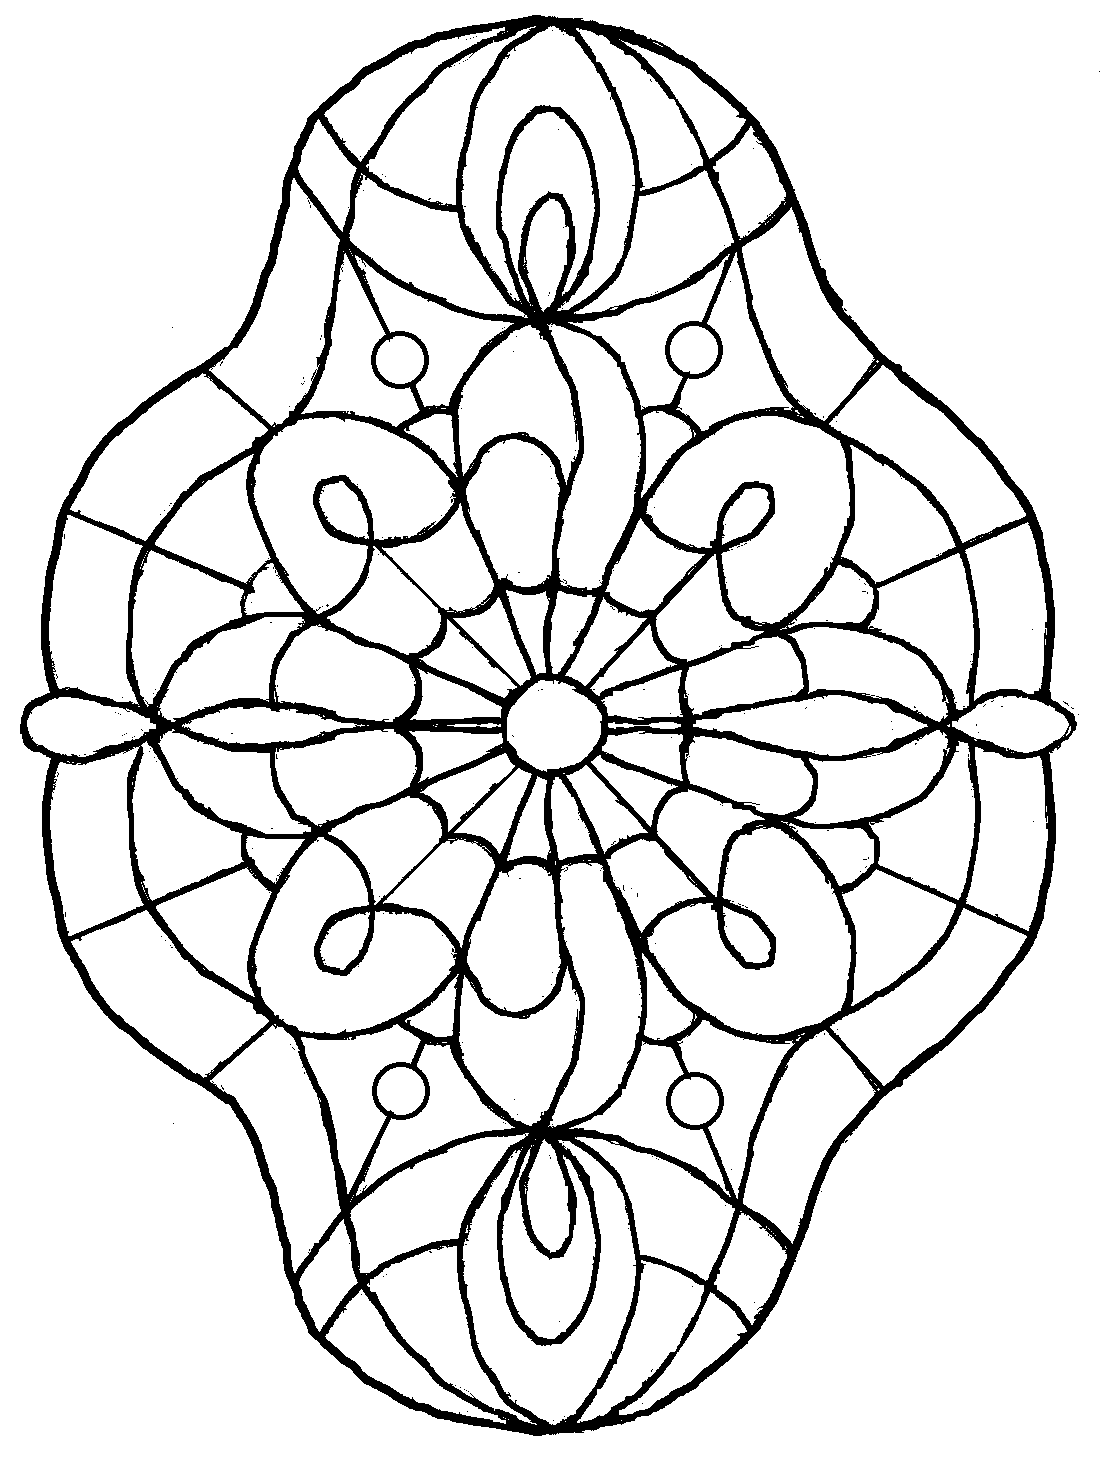 stained glass coloring pages printable large stained glass coloring pages easy coloring pages glass stained printable coloring pages